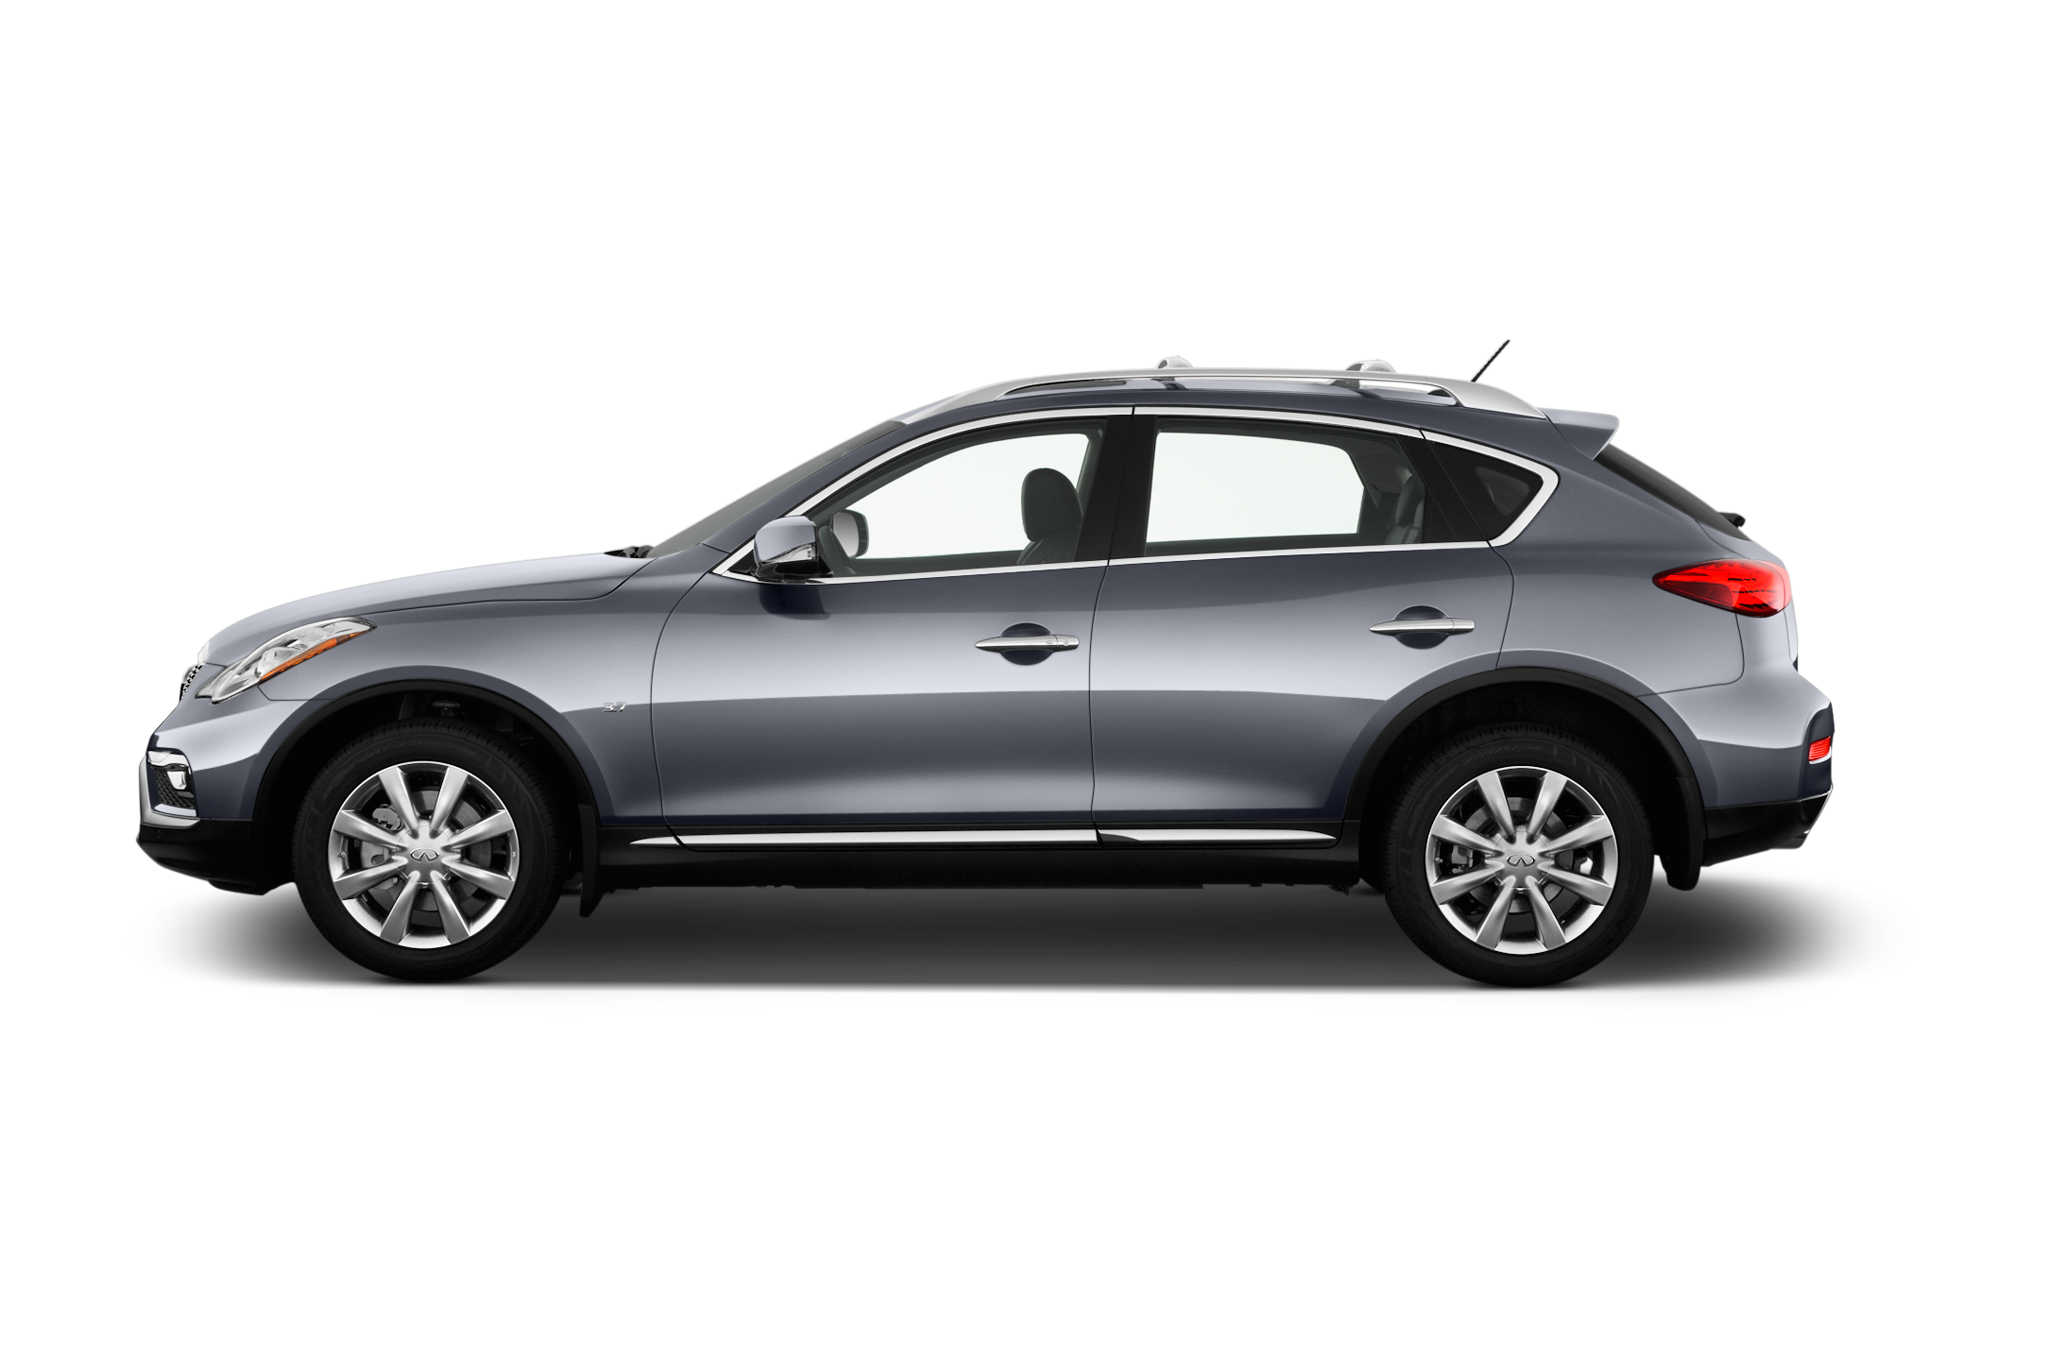 infiniti autoguide view infinity news manufacturer com large review ag